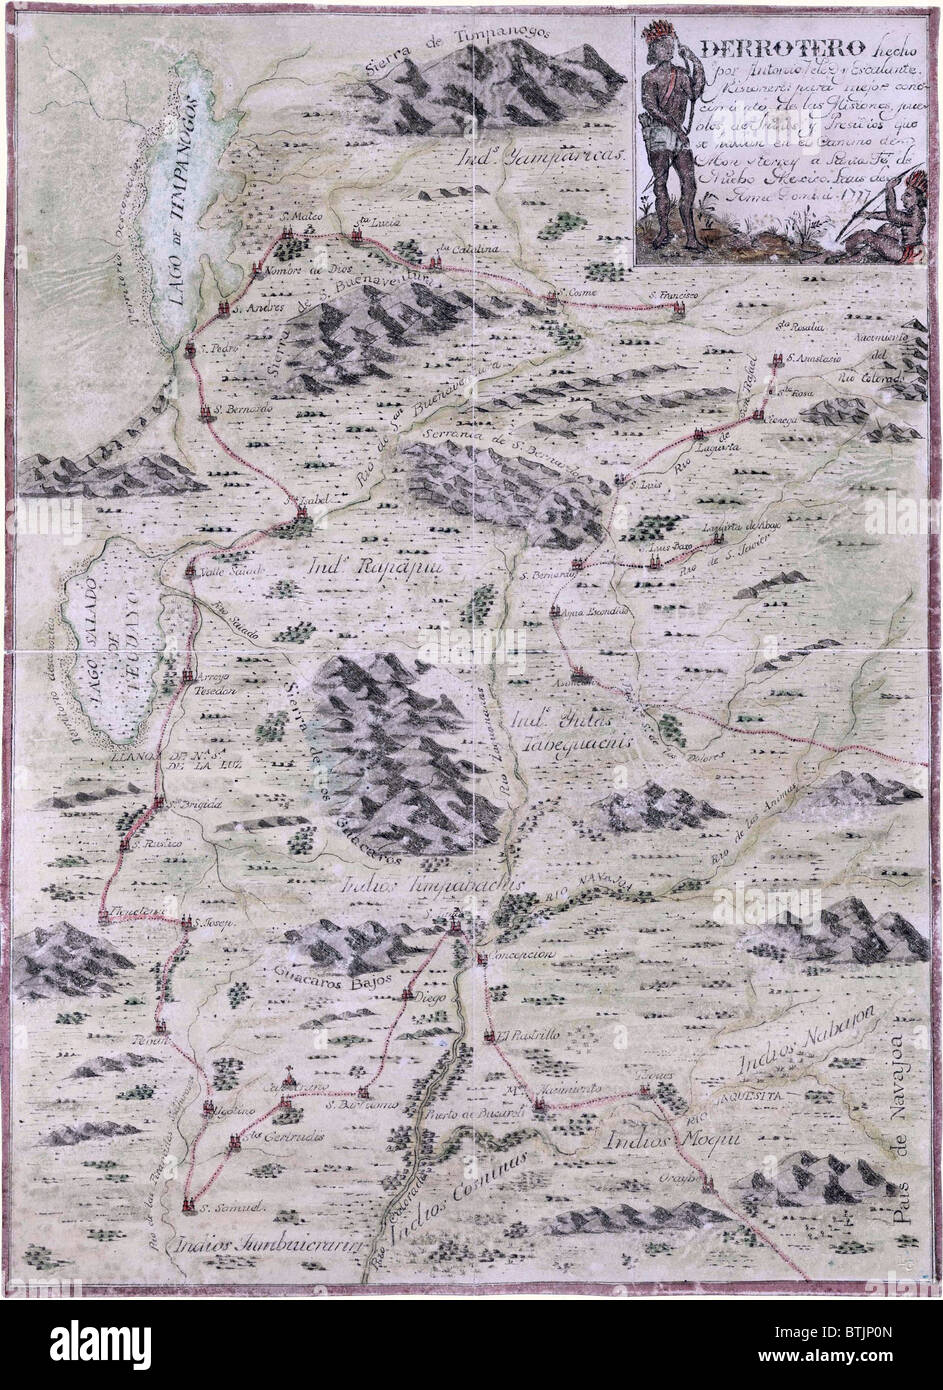 1777 map that covers sections of Colorado, Utah, Arizona and New ...